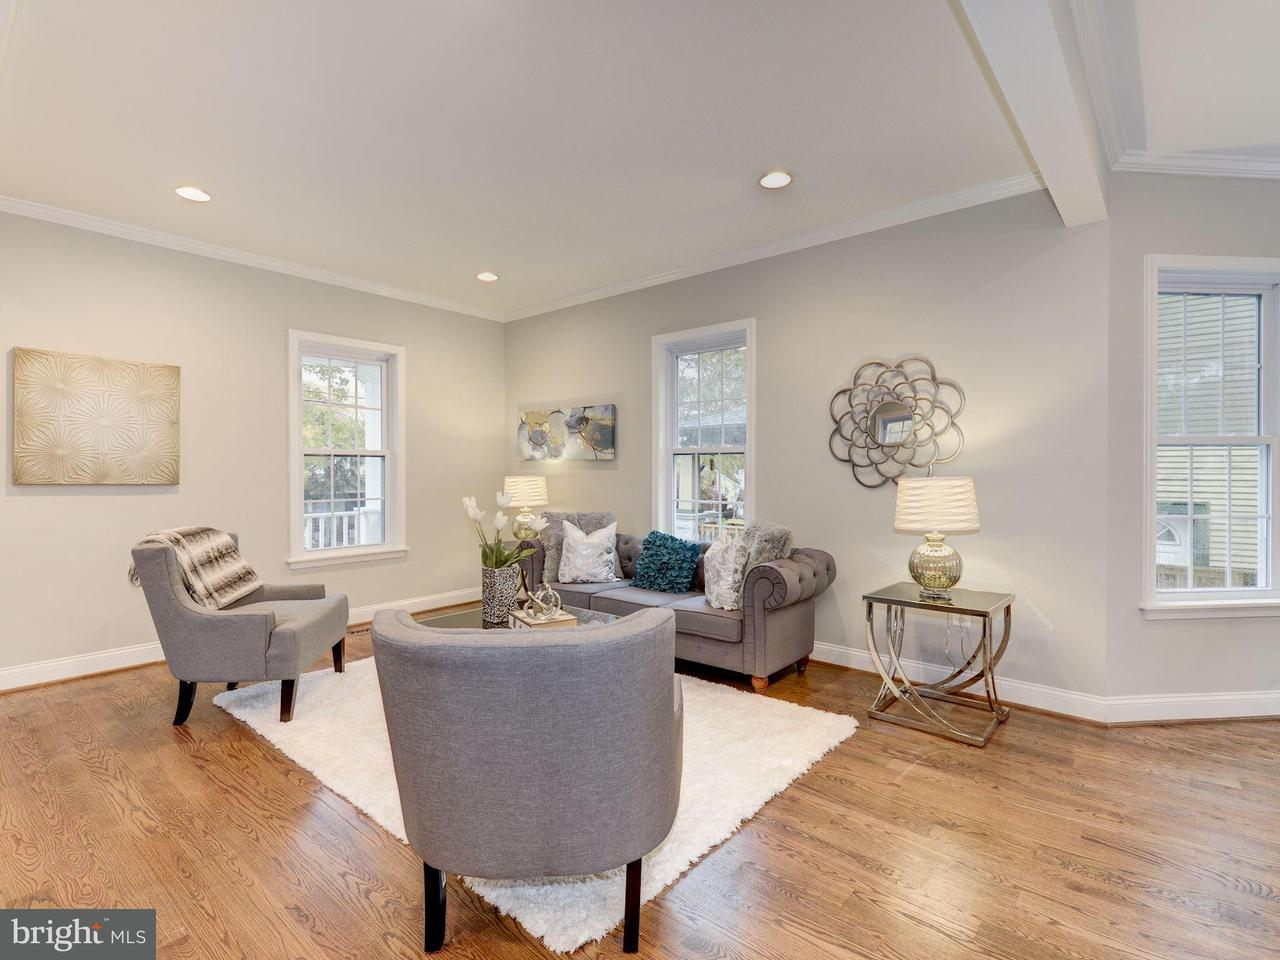 Additional photo for property listing at 2651 RHODE ISLAND AVE NE 2651 RHODE ISLAND AVE NE Washington, District Of Columbia 20018 United States